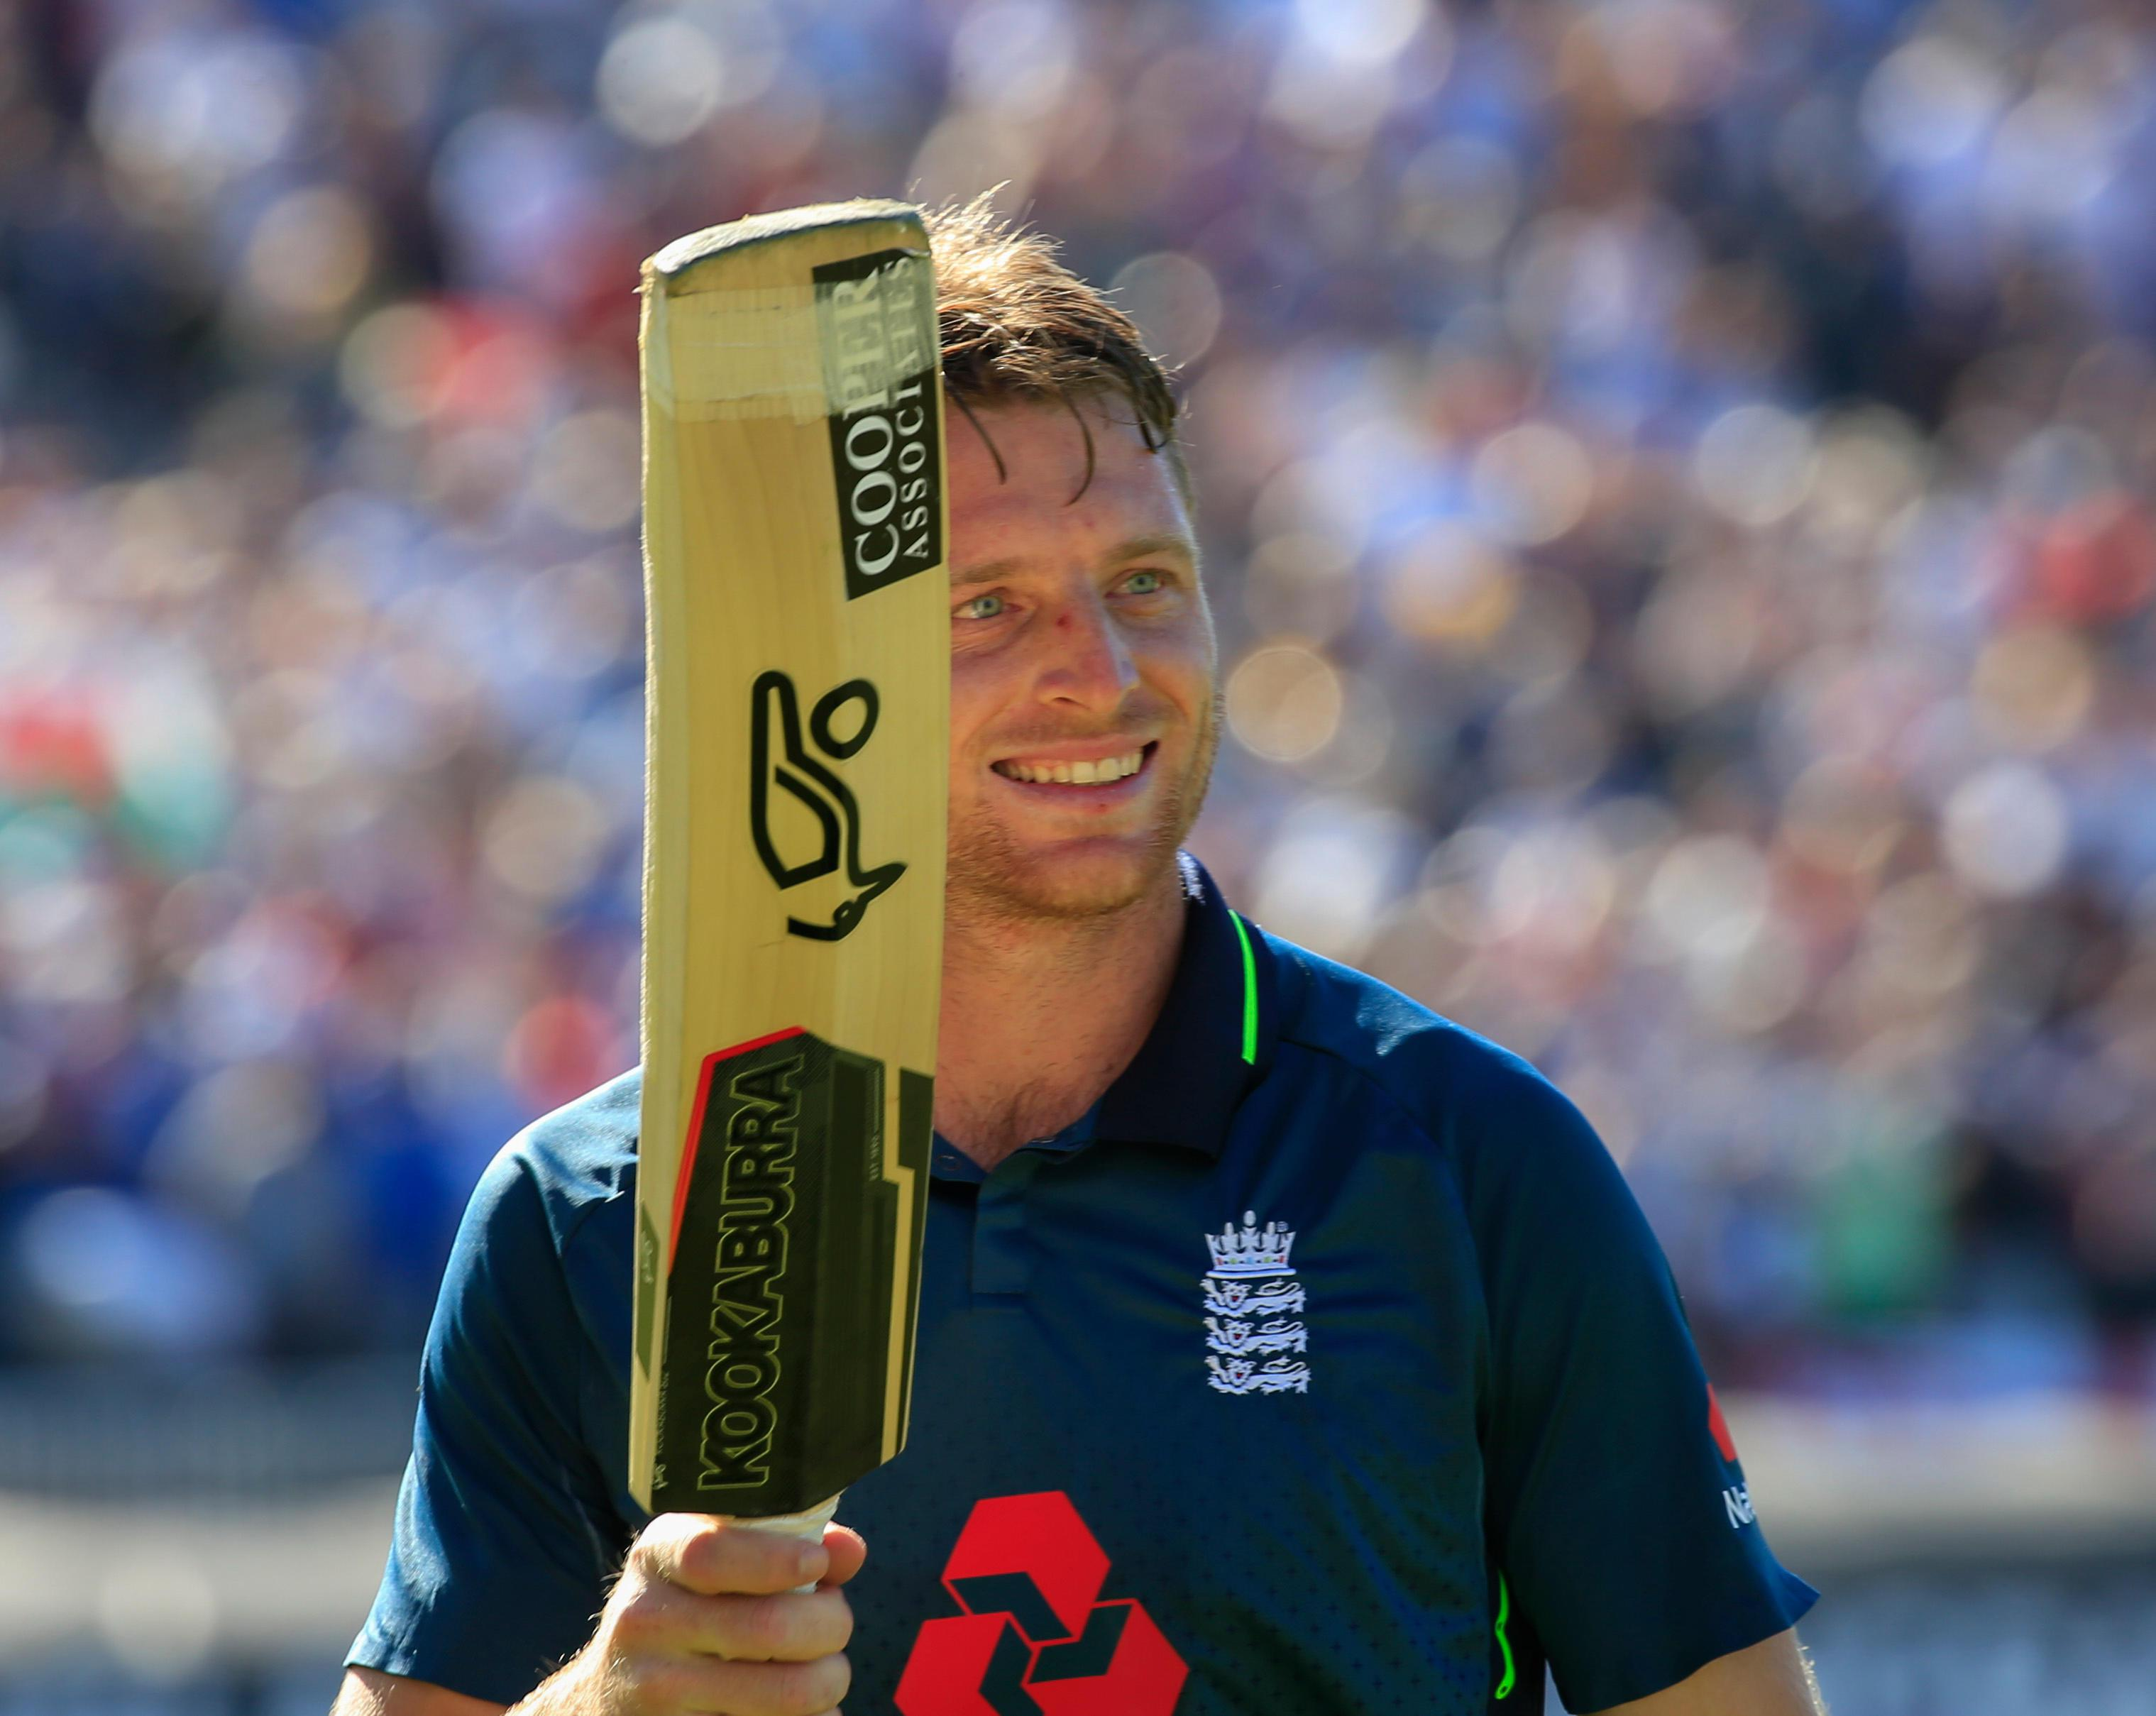 Jos Buttler was the hero with a great one-day innings against Australia